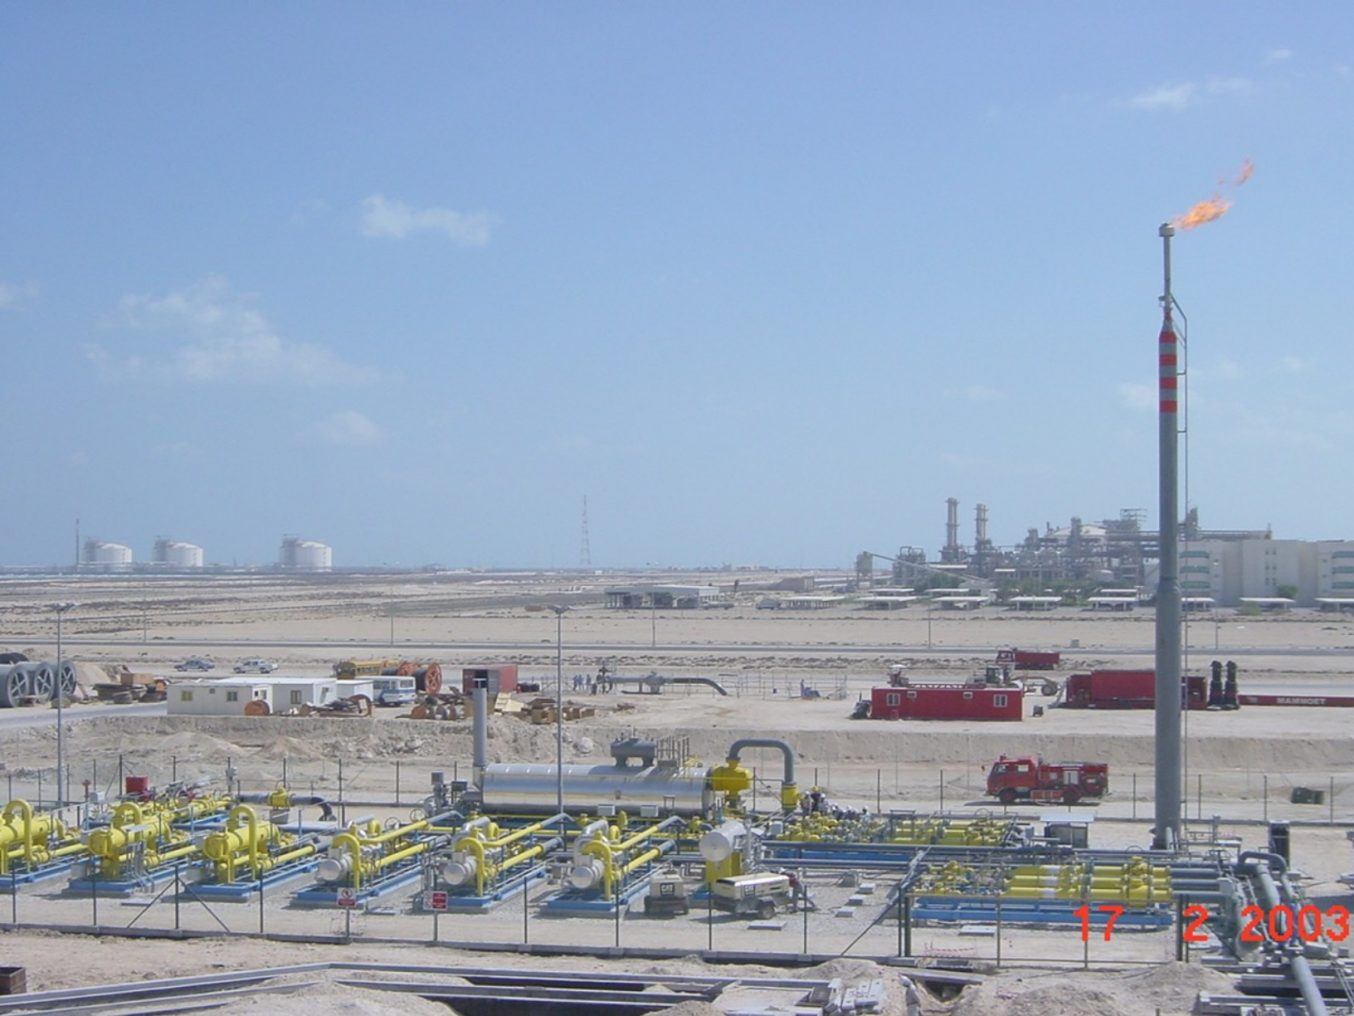 RAS LAFFAN POWER PLANT